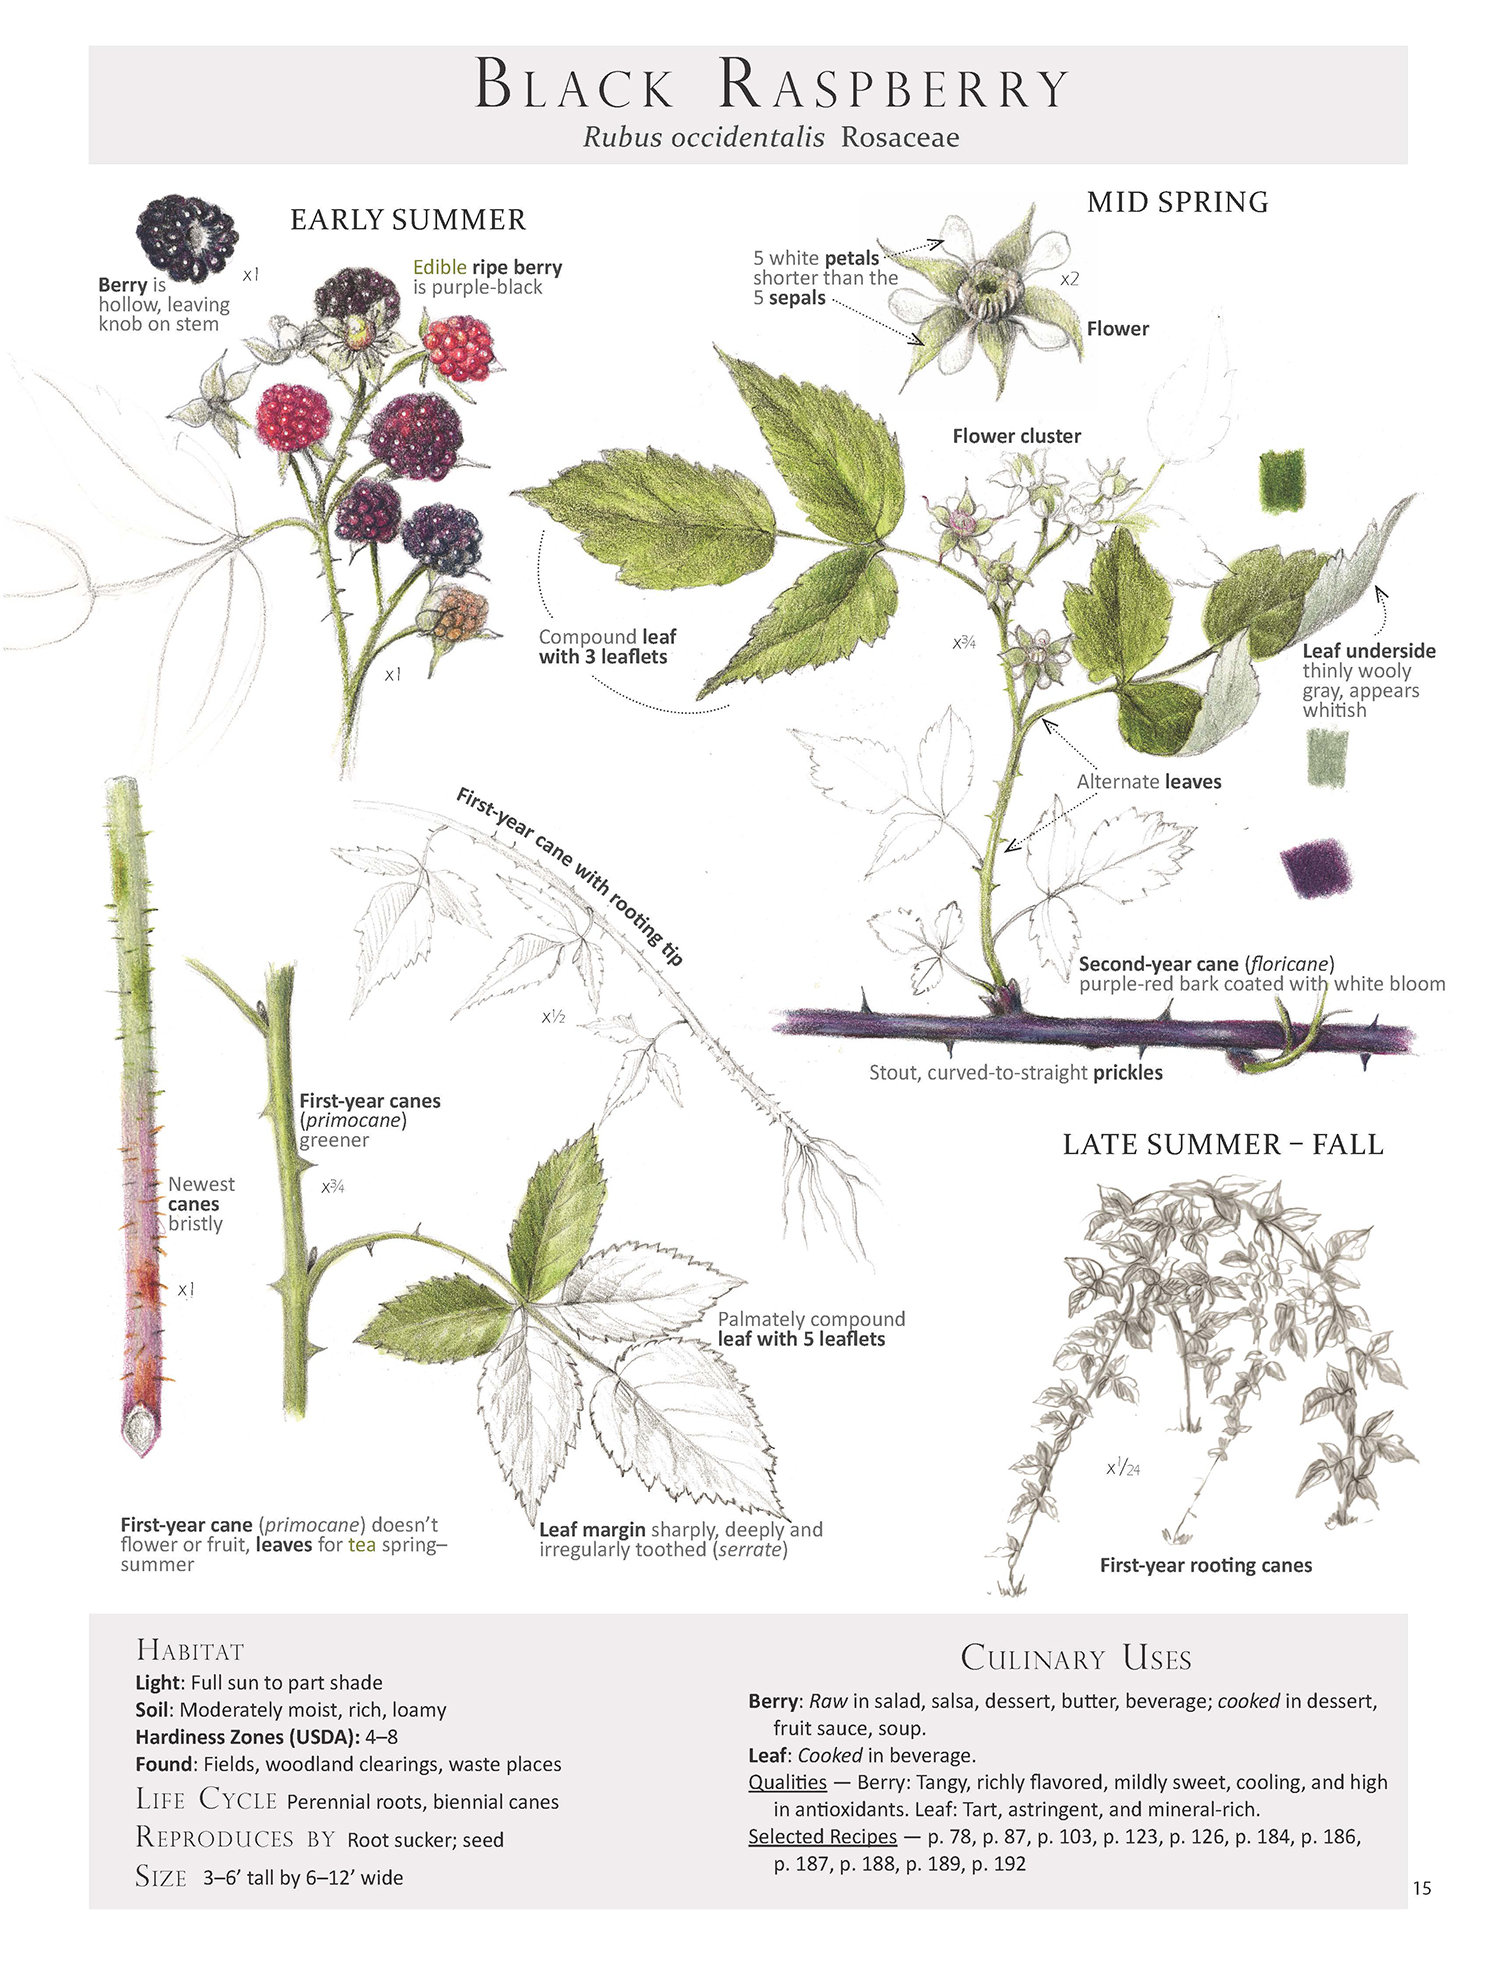 To help with id, harvest and use, here is our Black Raspberry Plant Map from Foraging & Feasting: A Field Guide and Wild Food Cookbook by Dina Falconi (me), illustrated by Wendy Hollender. Book link ~ http://bit.ly/1Auh44Q